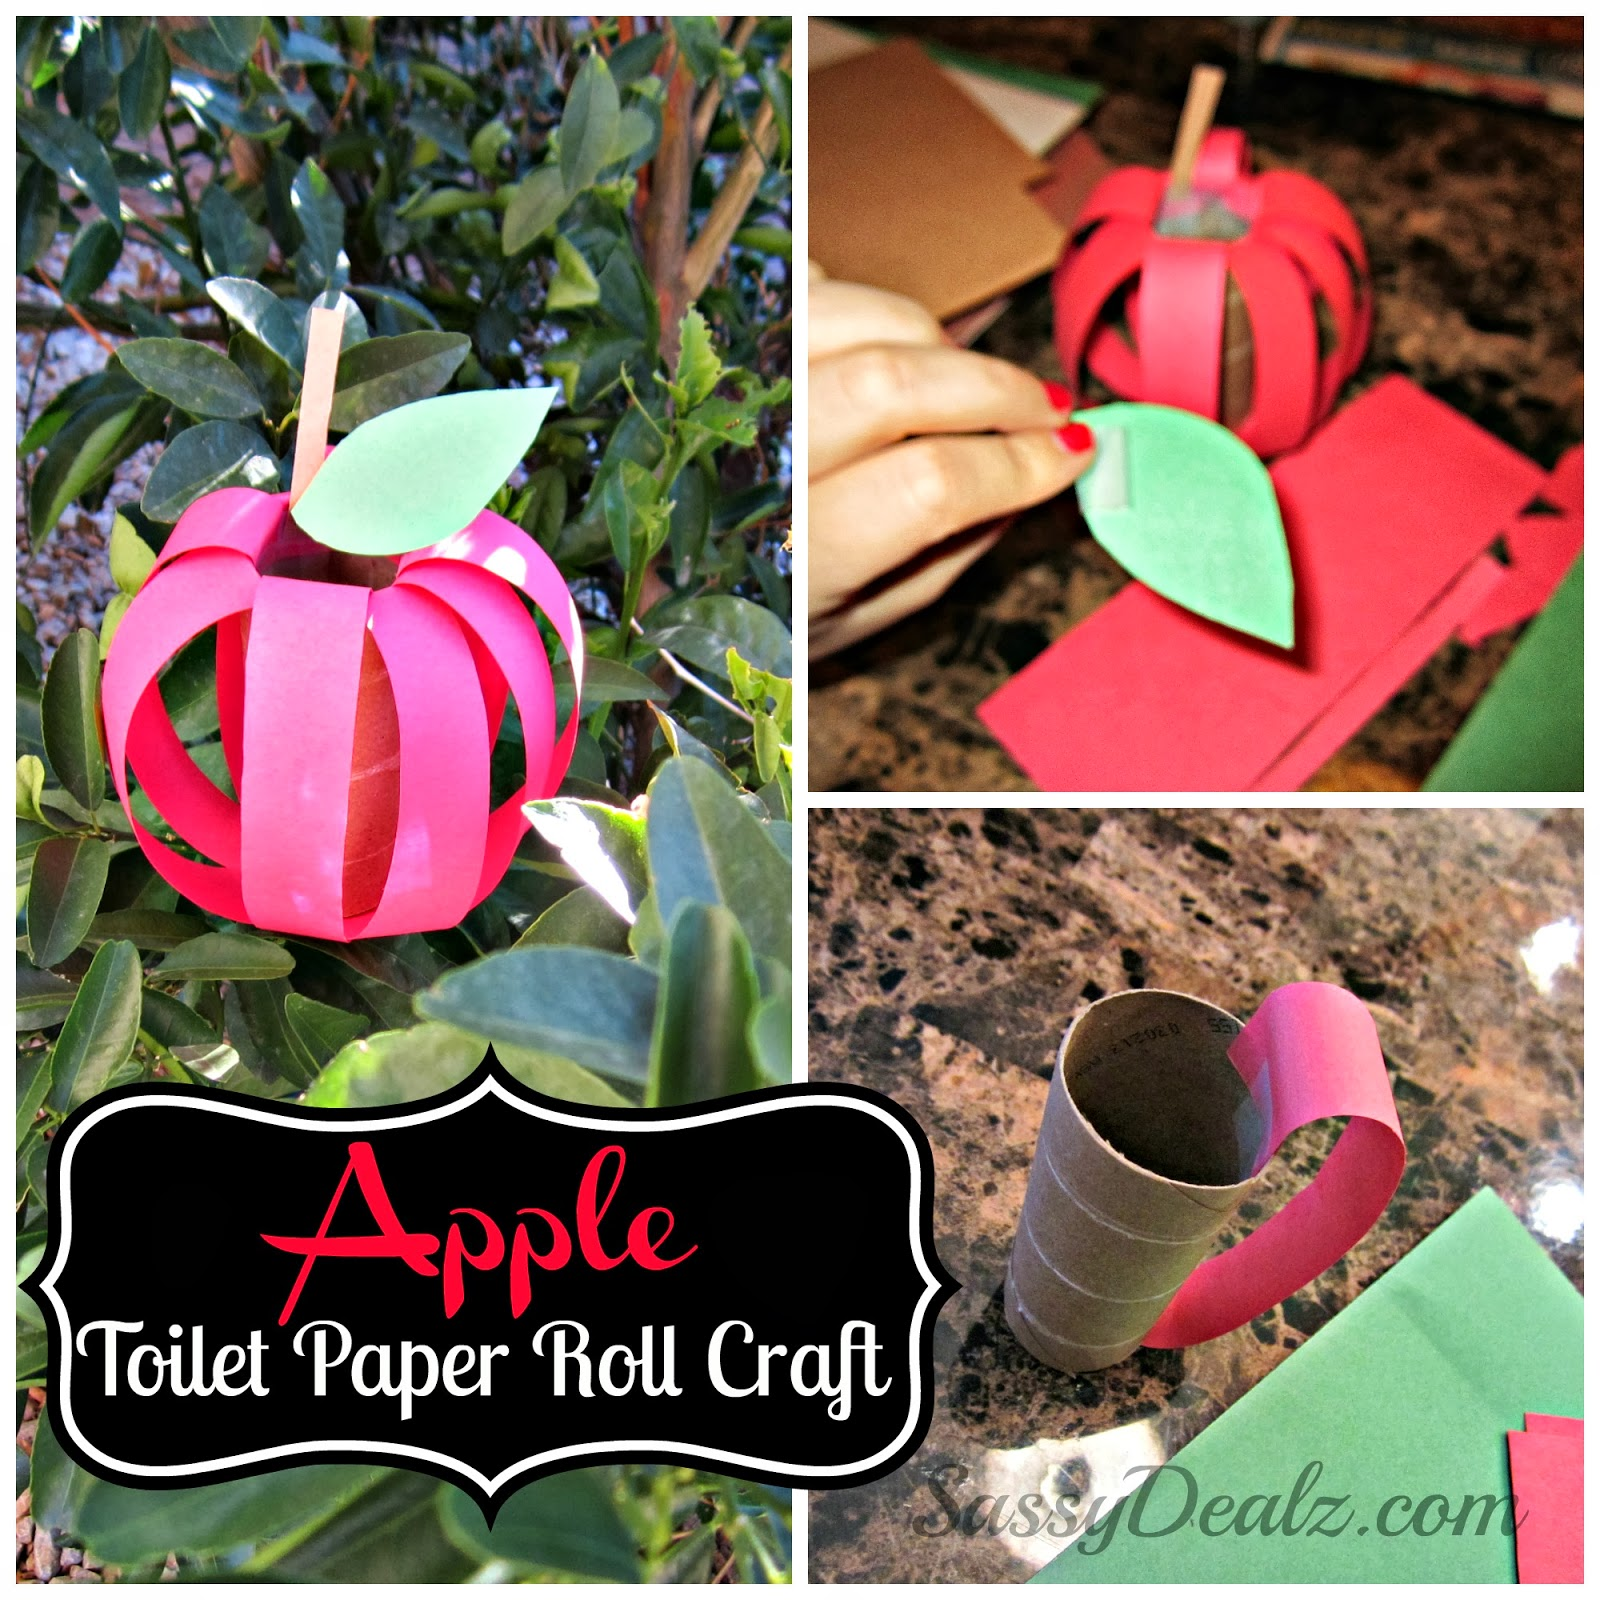 Diy Apple Toilet Paper Roll Craft For Kids Crafty Morning